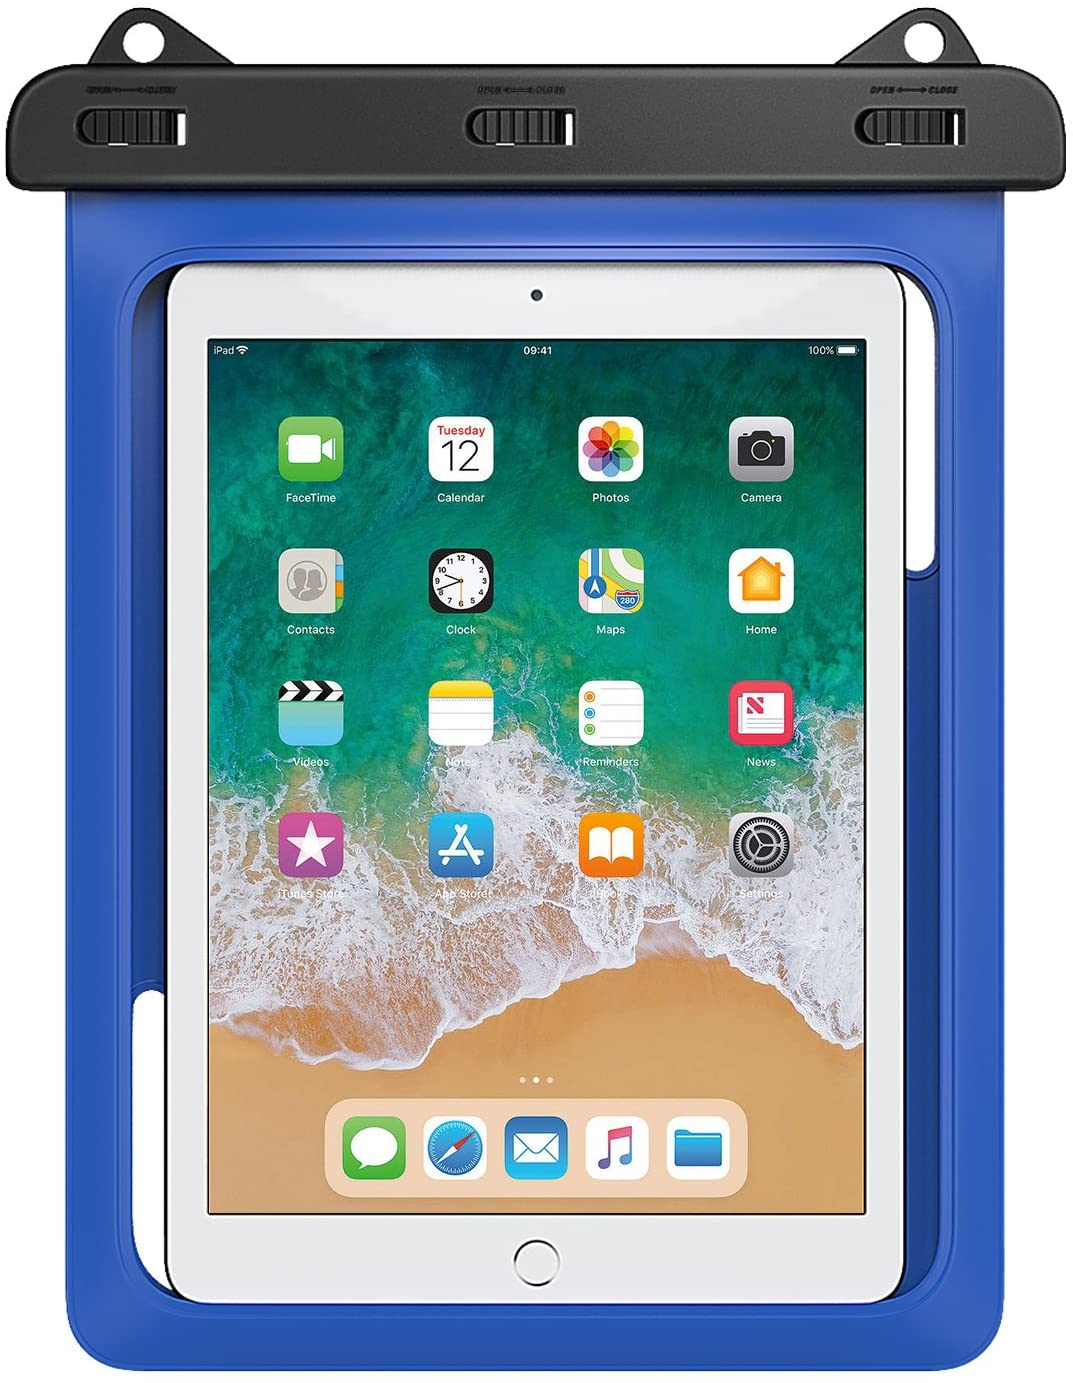 Best waterproof iPad case: A dry bag option from MoKo is affordable, but offers less drop protection.